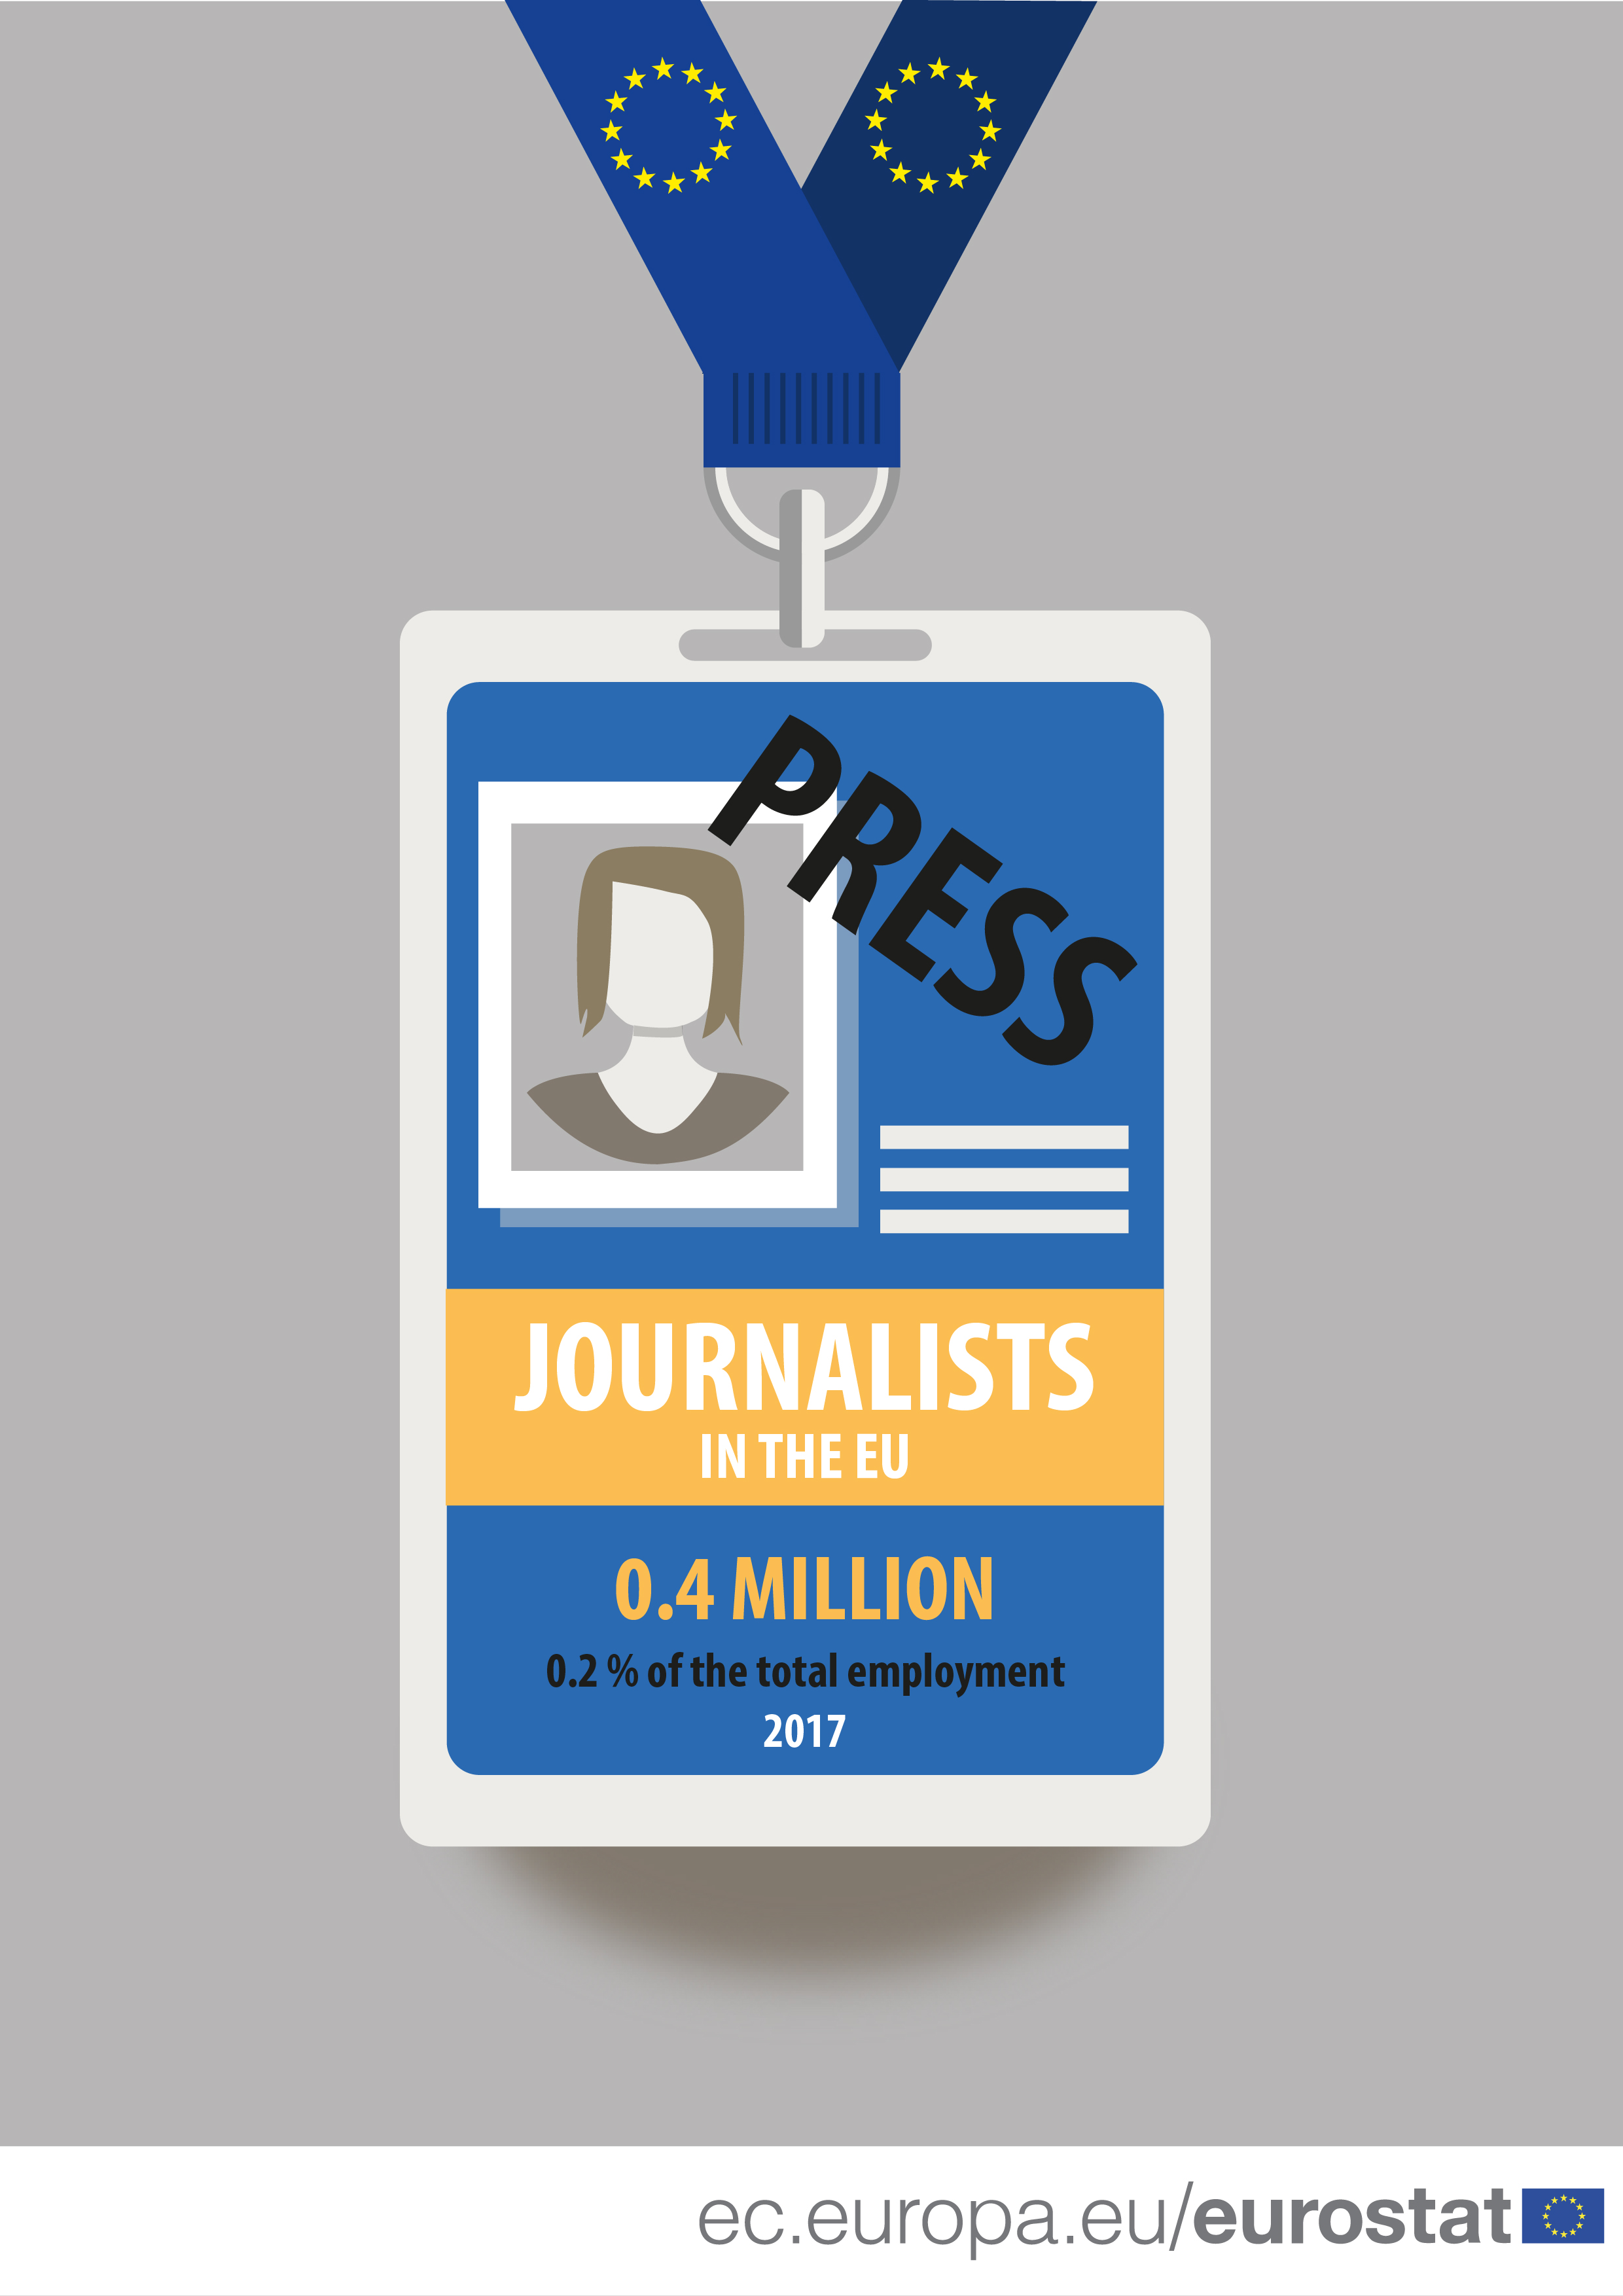 Journalists in the EU, 0.4 million (2017)